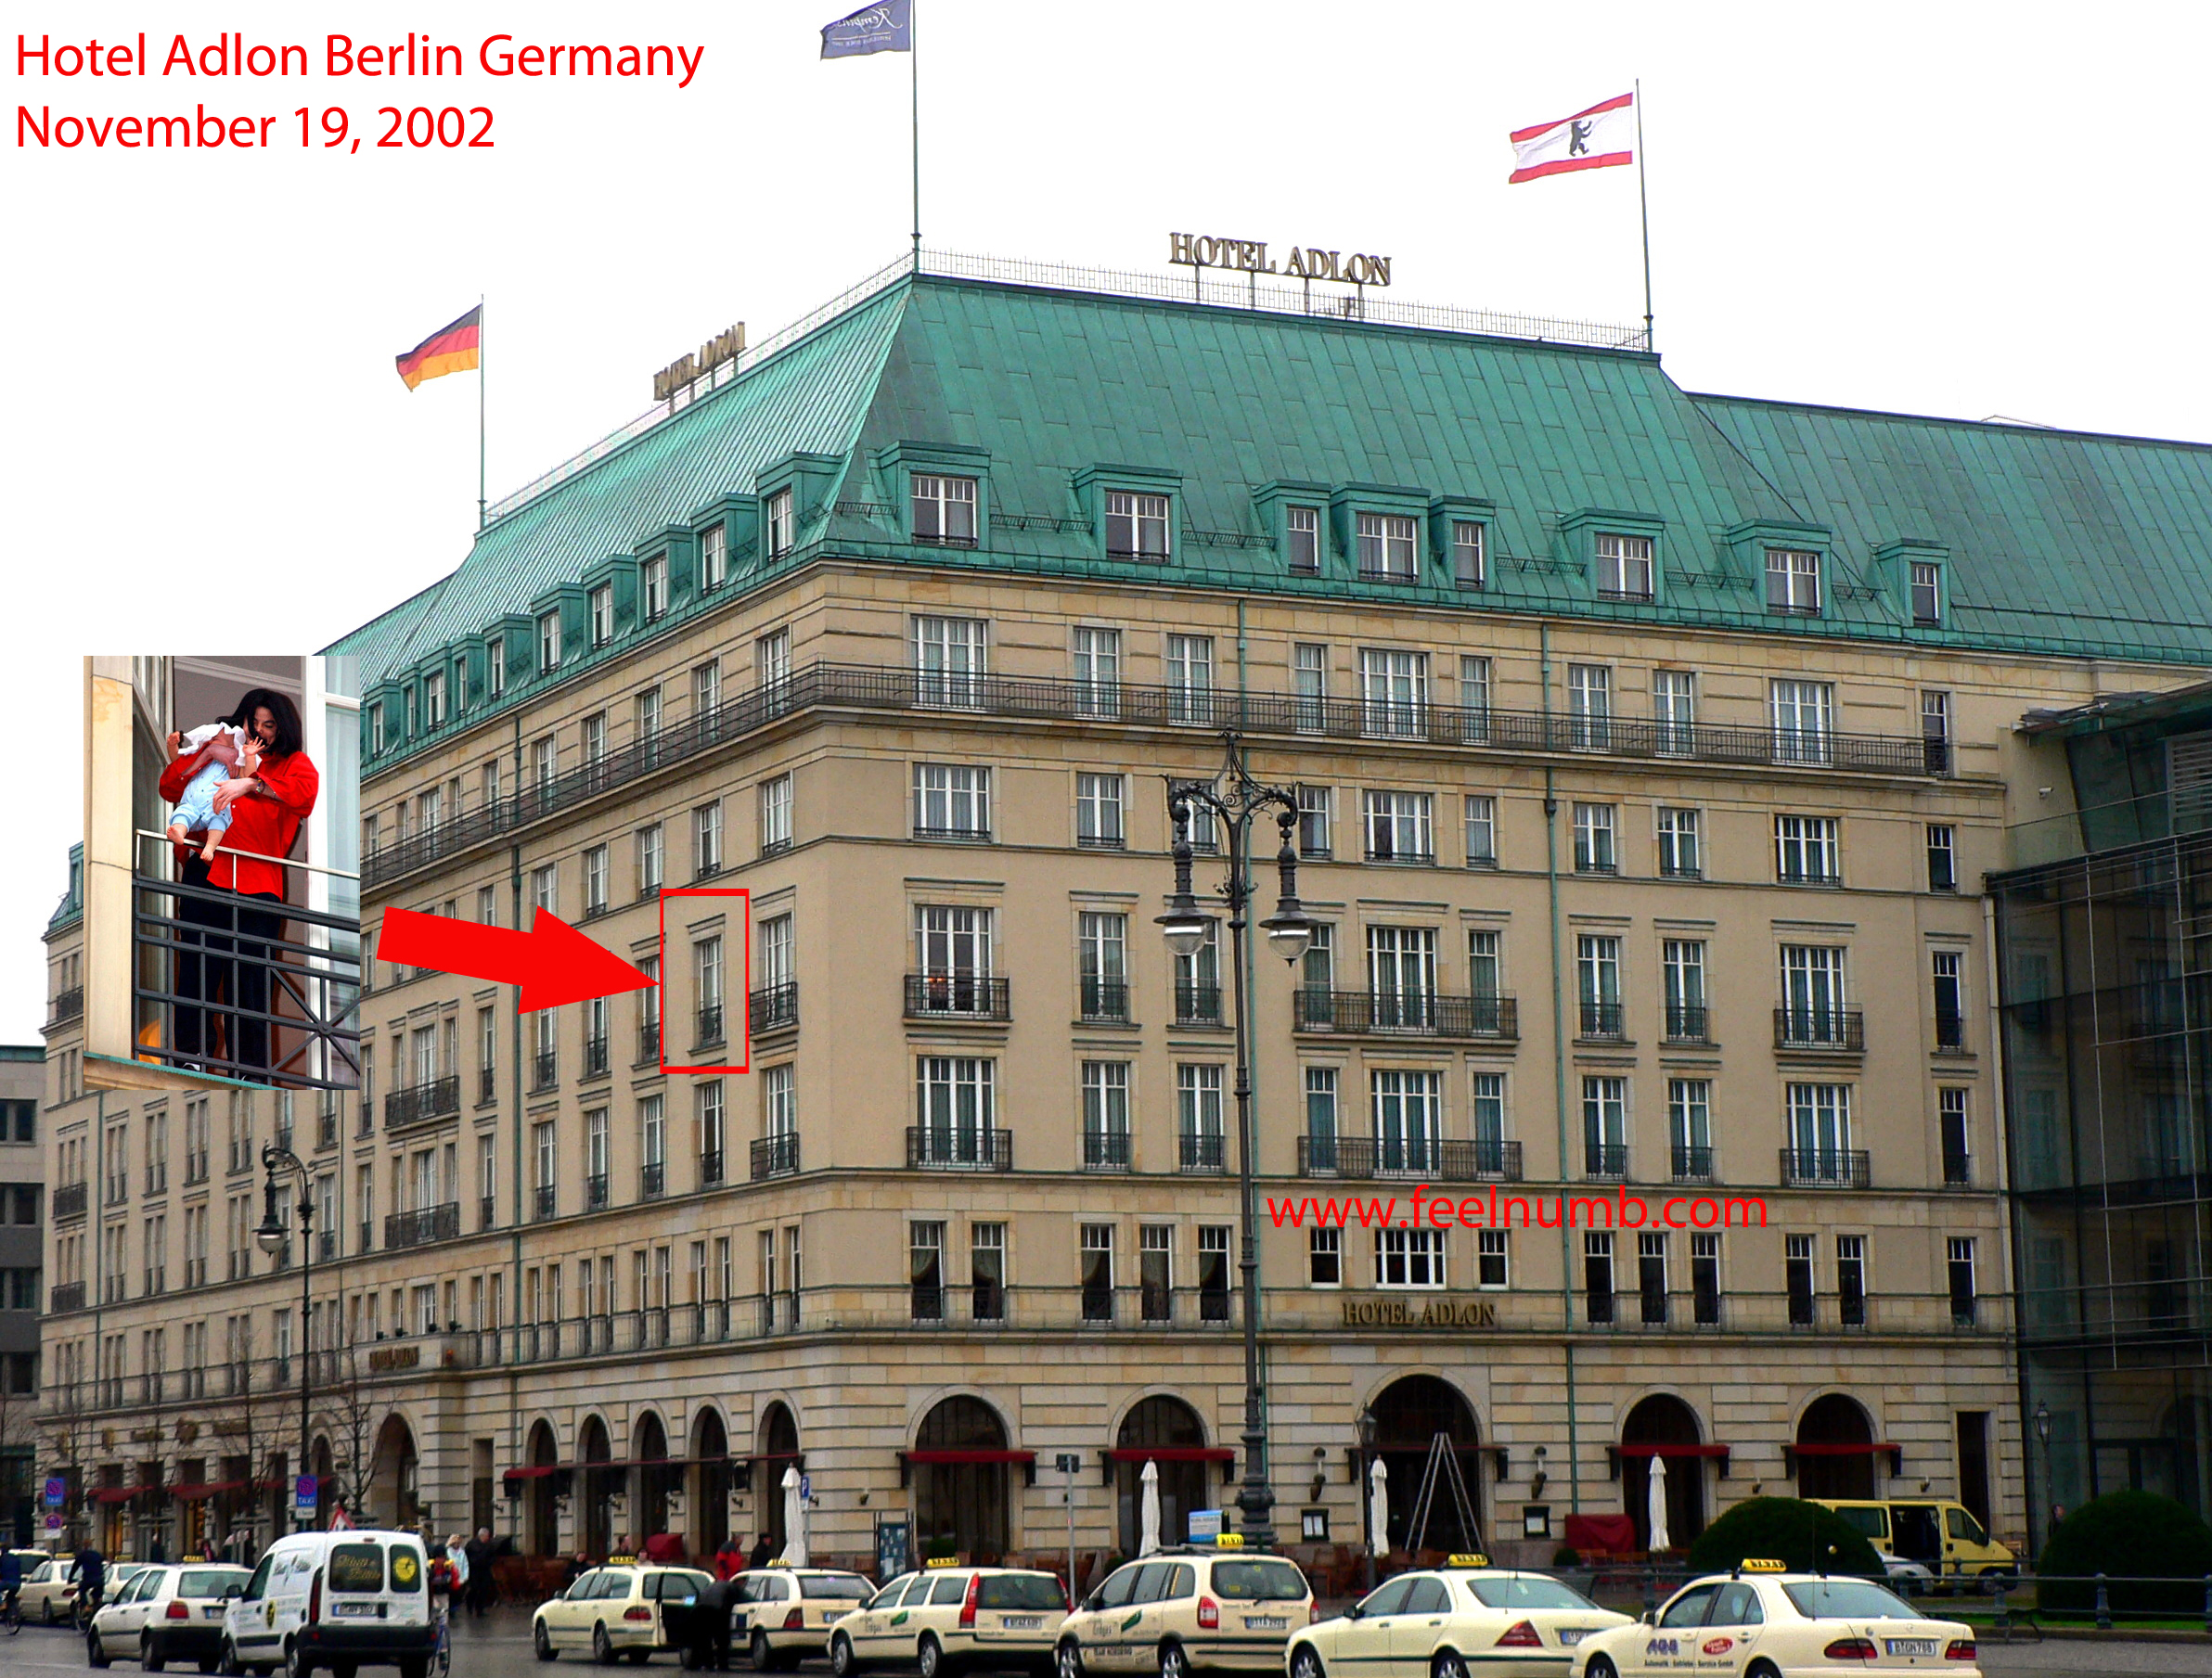 Hotel Adlon Berlin Germany Michael Jackson Blanket Jackson Balcony 2002